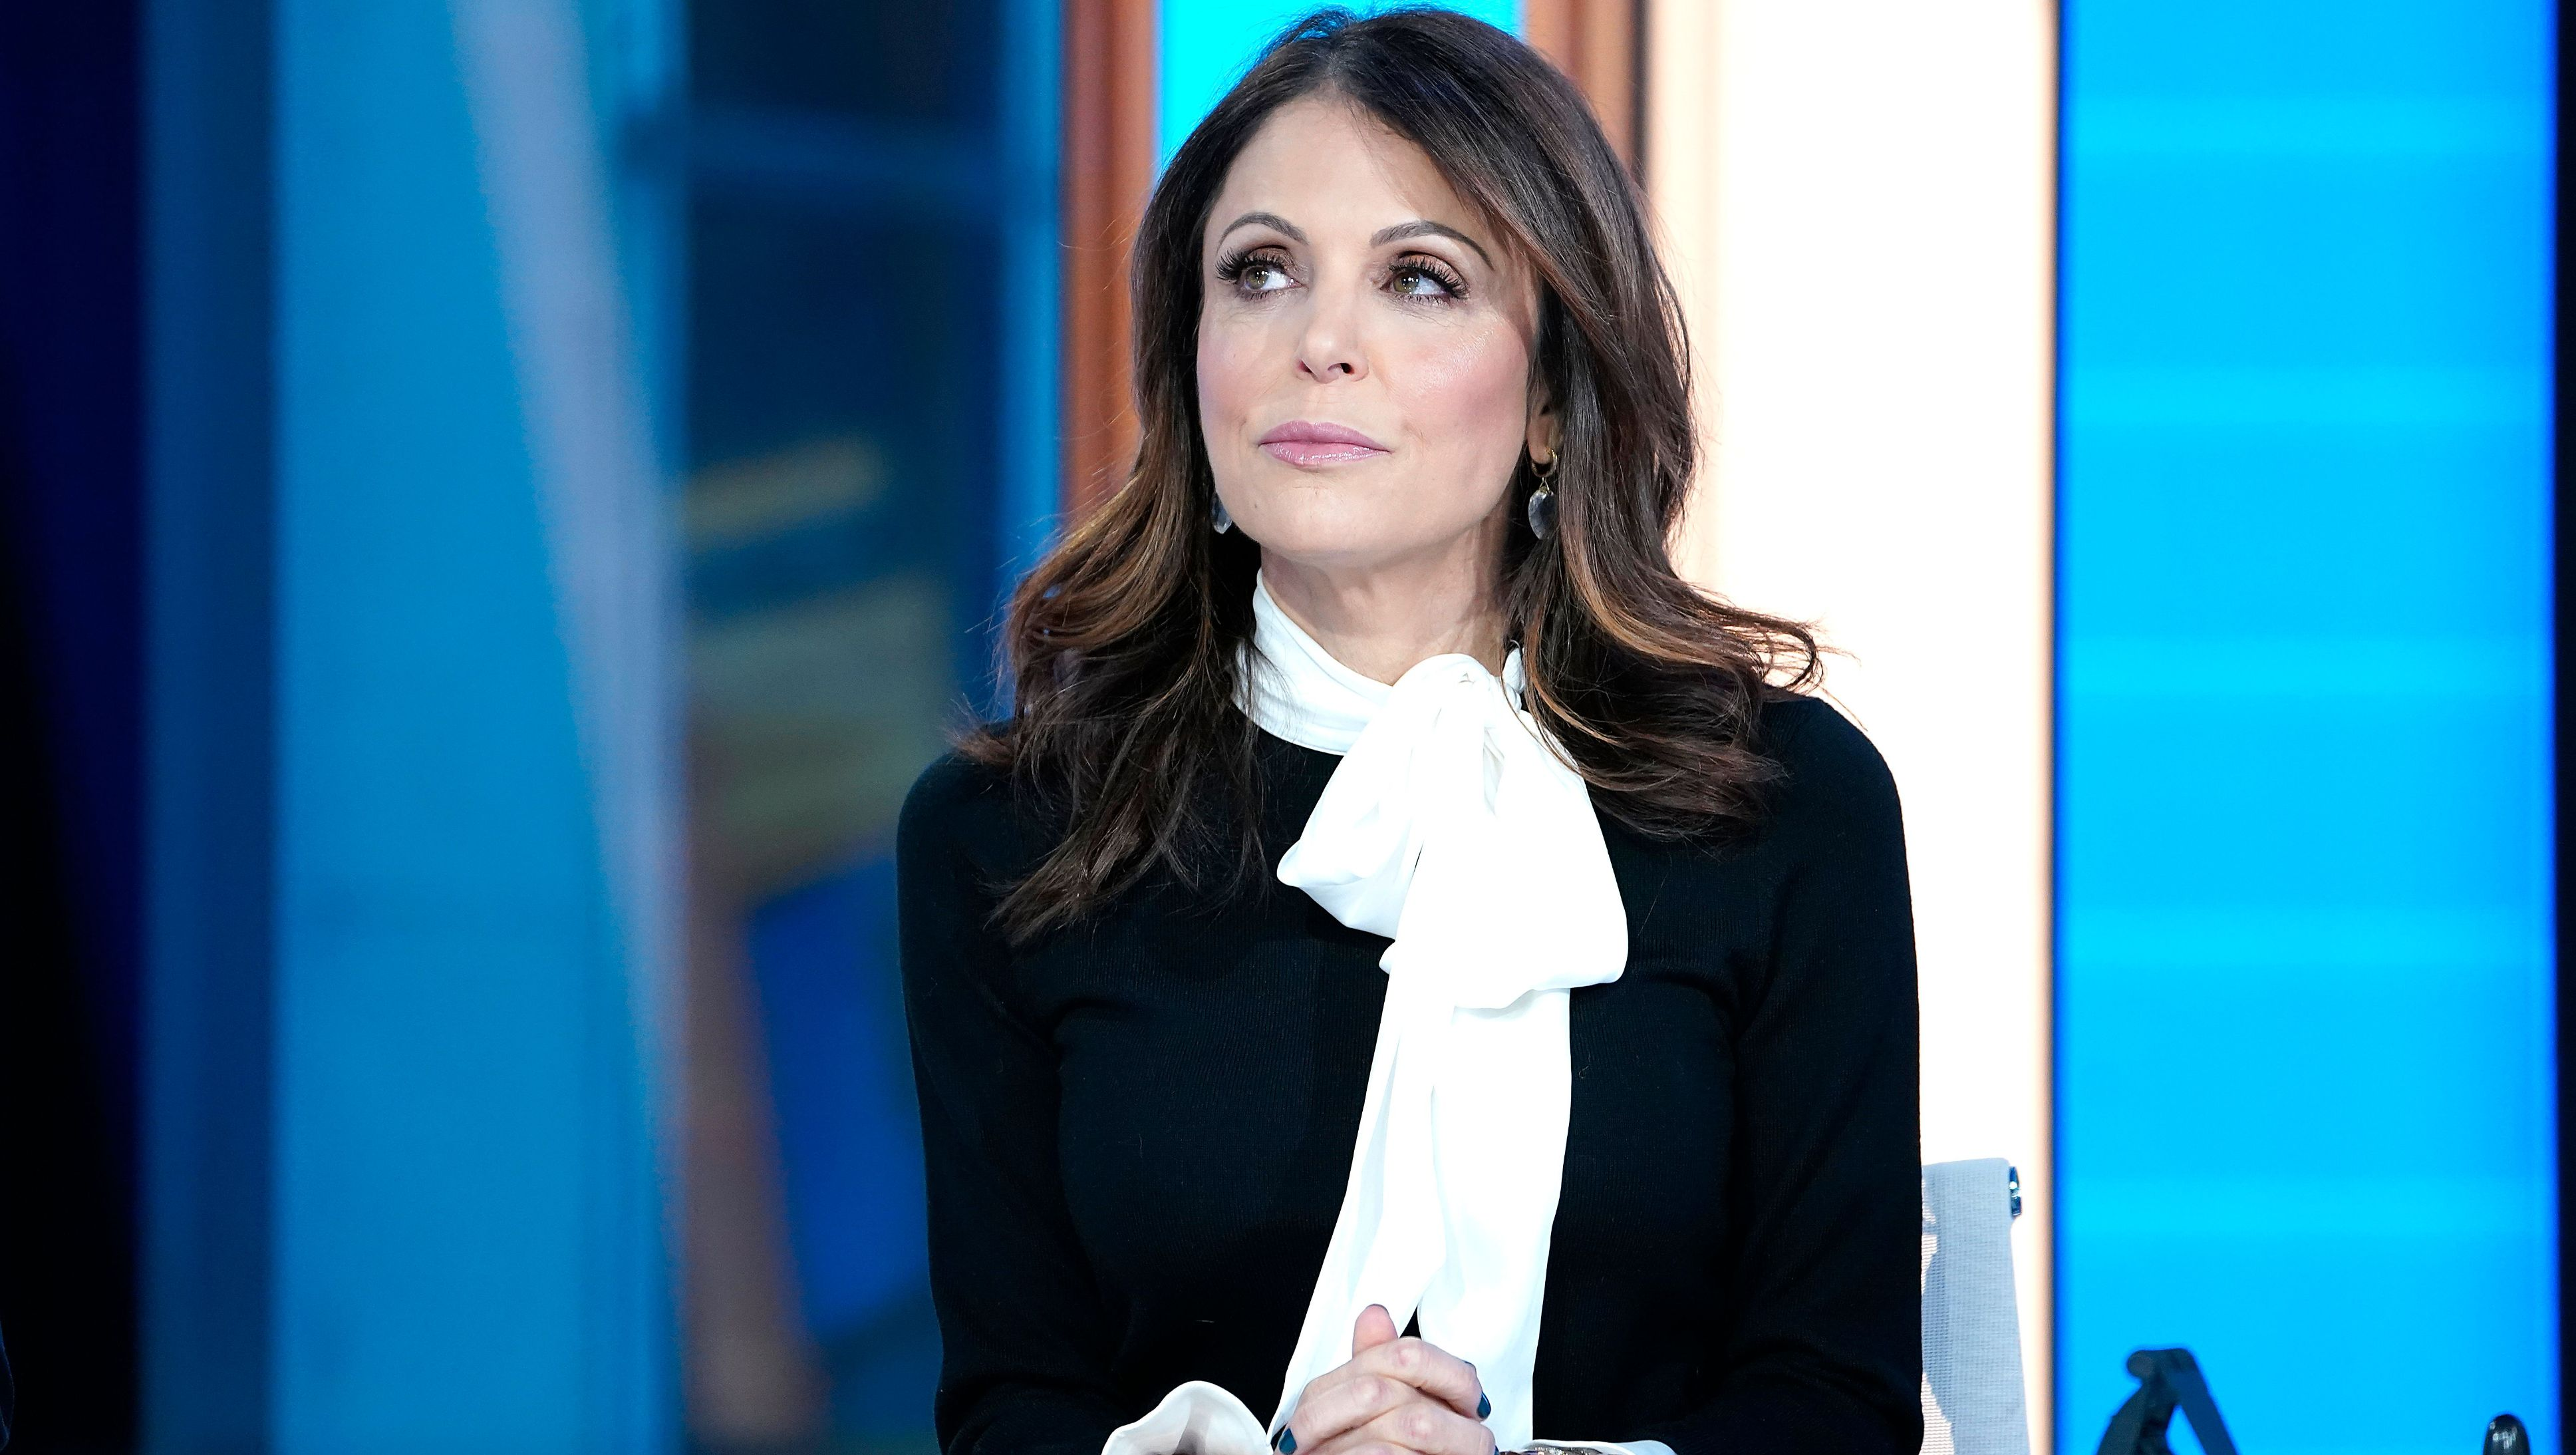 Bethenny Frankel attends a TV appearance.